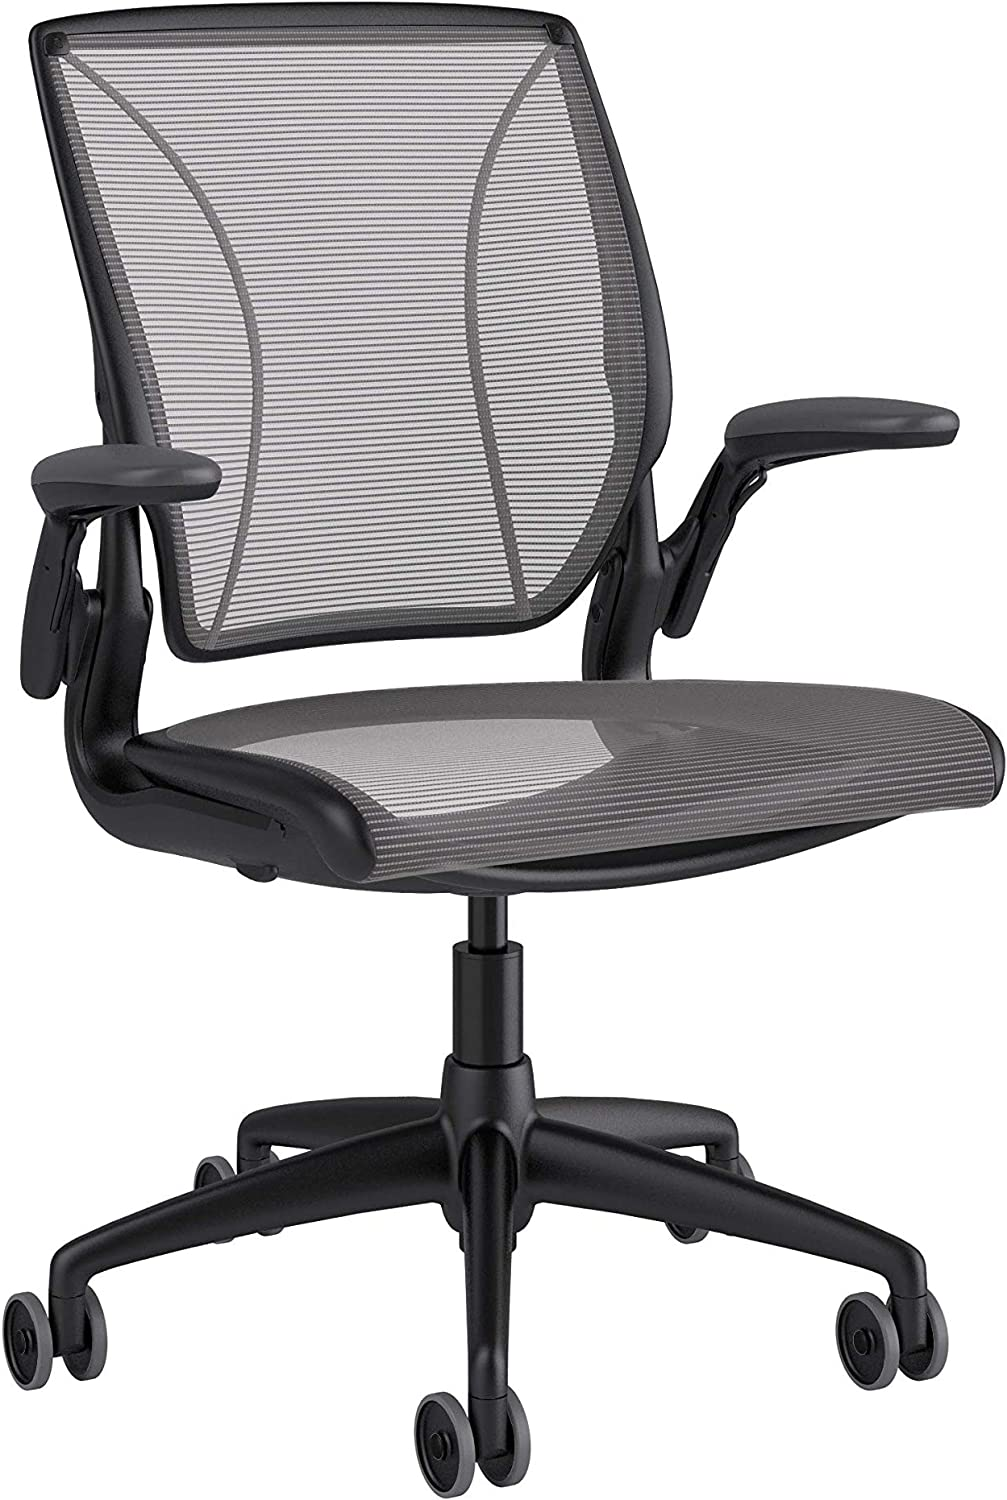 Humanscale Diffrient World Office Task Desk Chair - Adjustable Duron Arms - Black Frame Silver Pinstripe Back and Seat Mesh W11BN02N02-S - Soft Hard Floor Casters